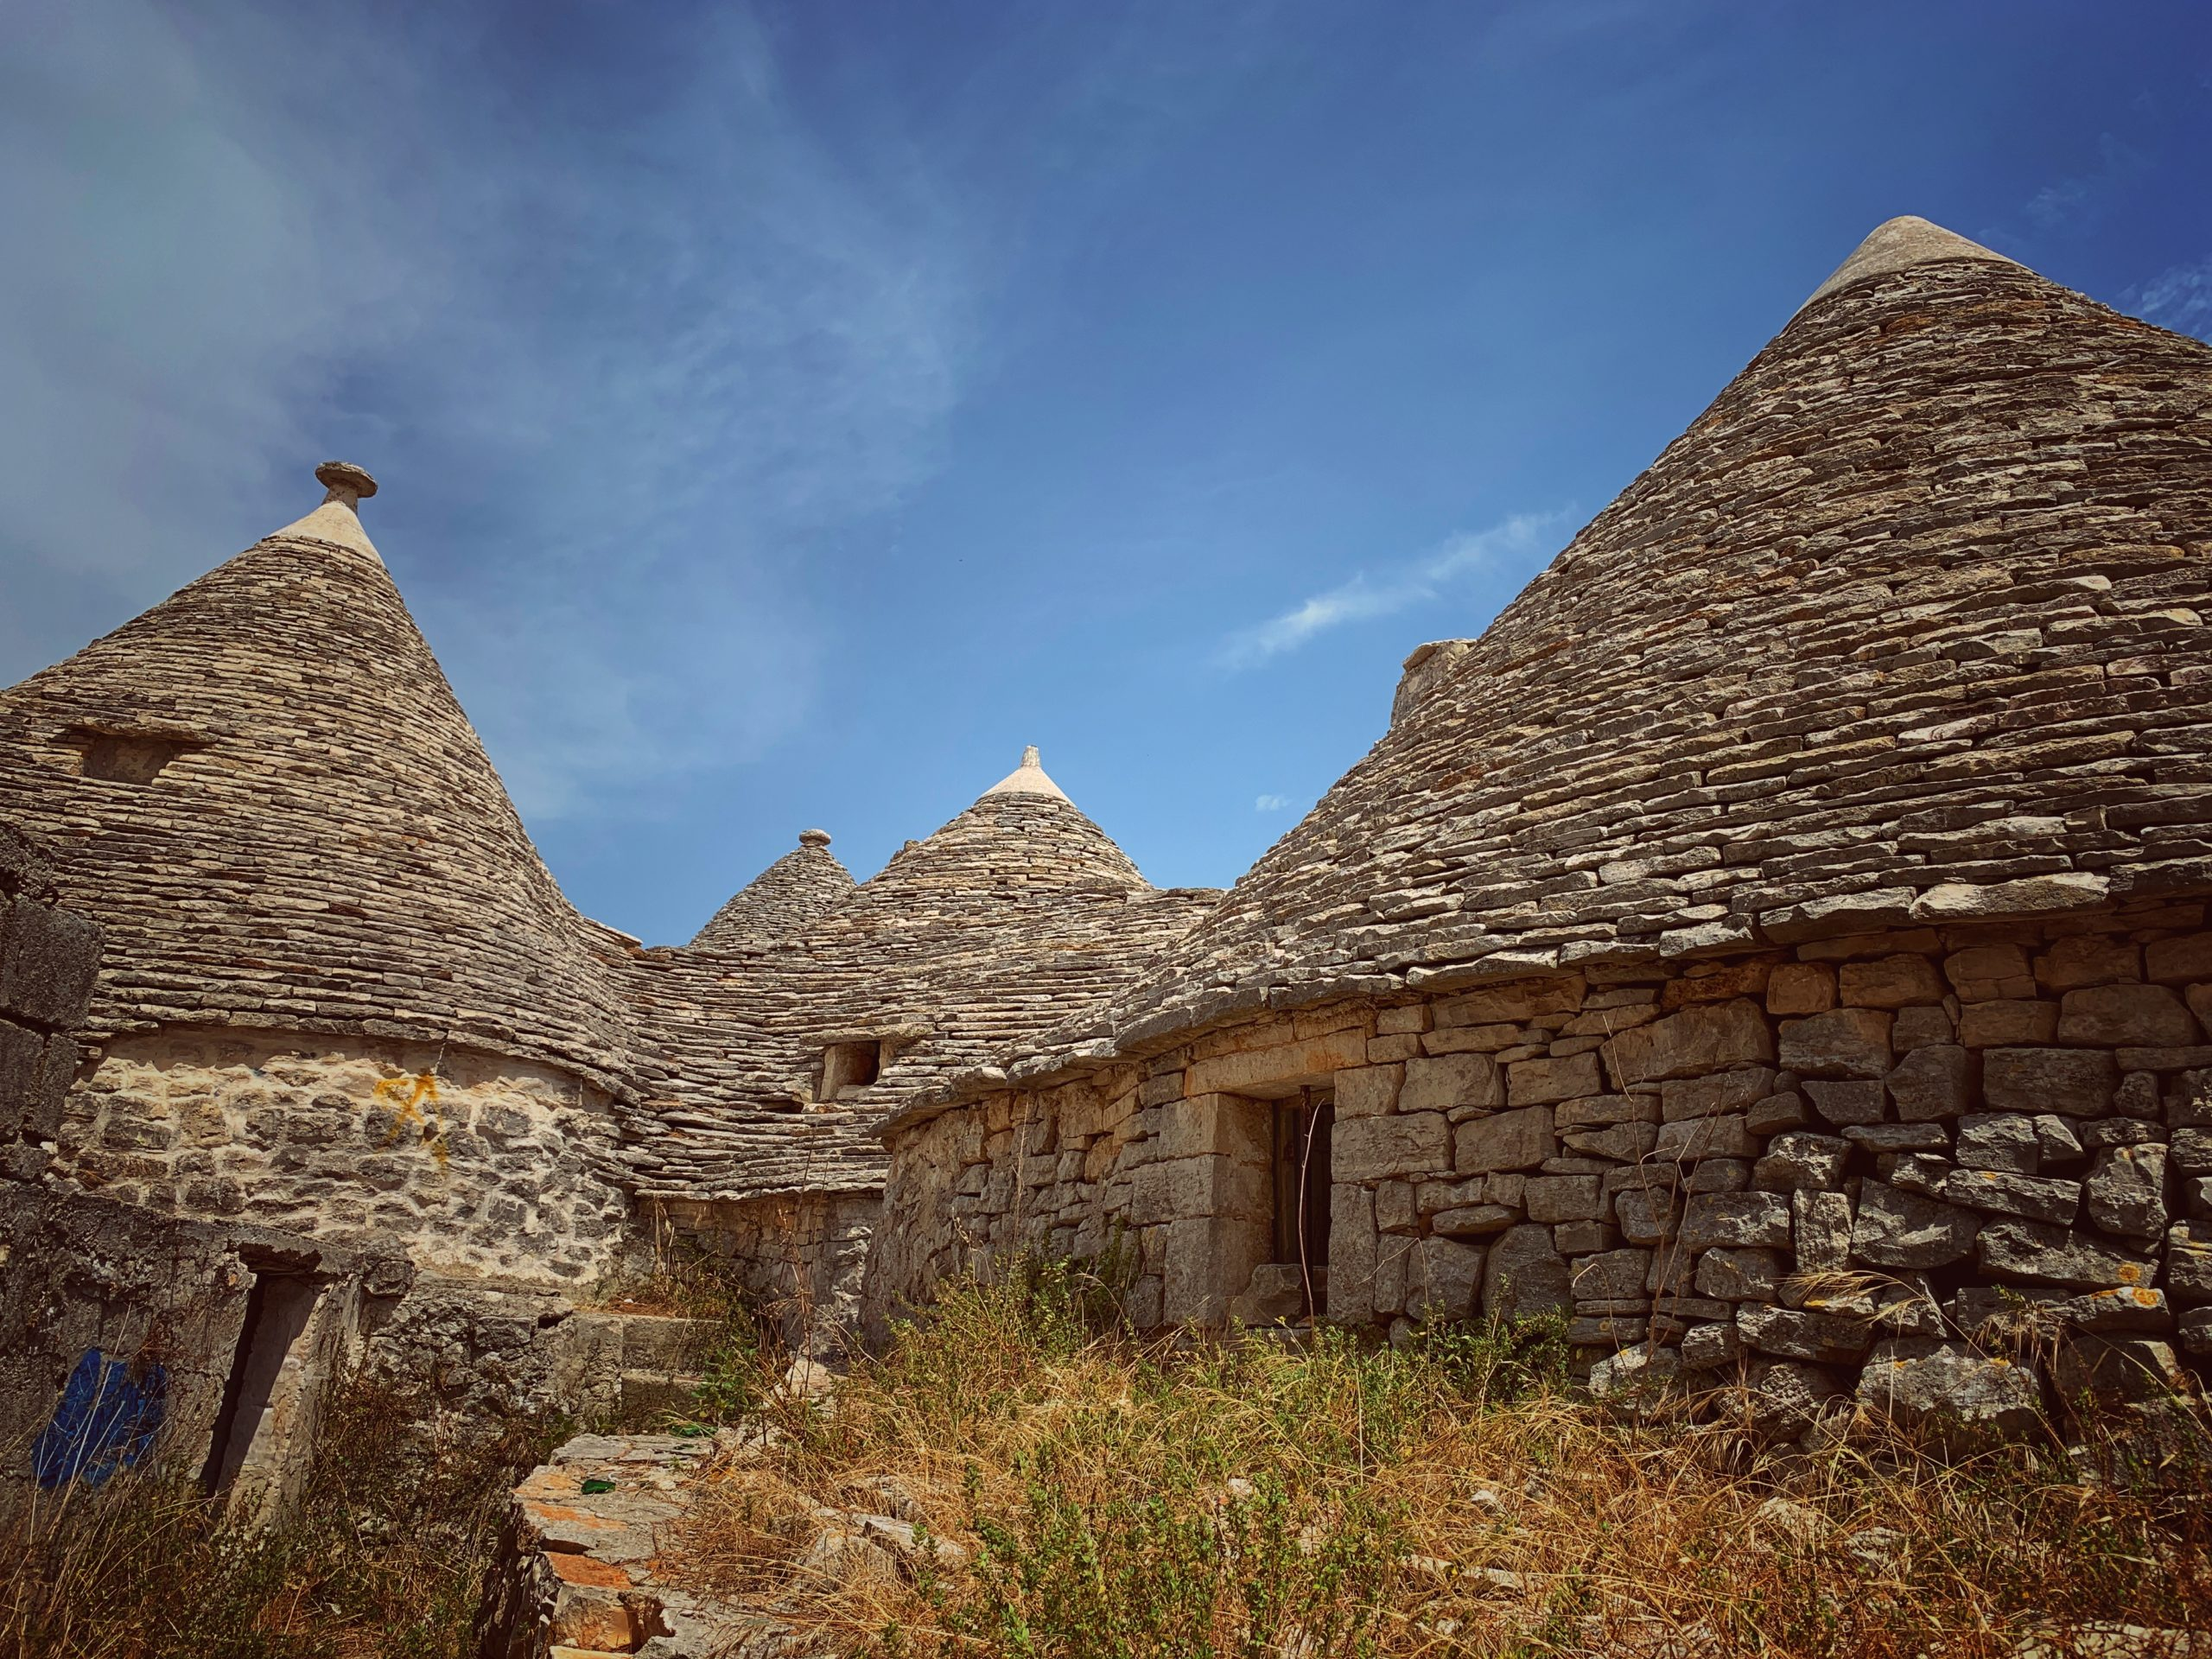 Most trulli in Alberobello have been renovated. Here is a trullo hidden away with a secret garden, away from the main trulli zone.